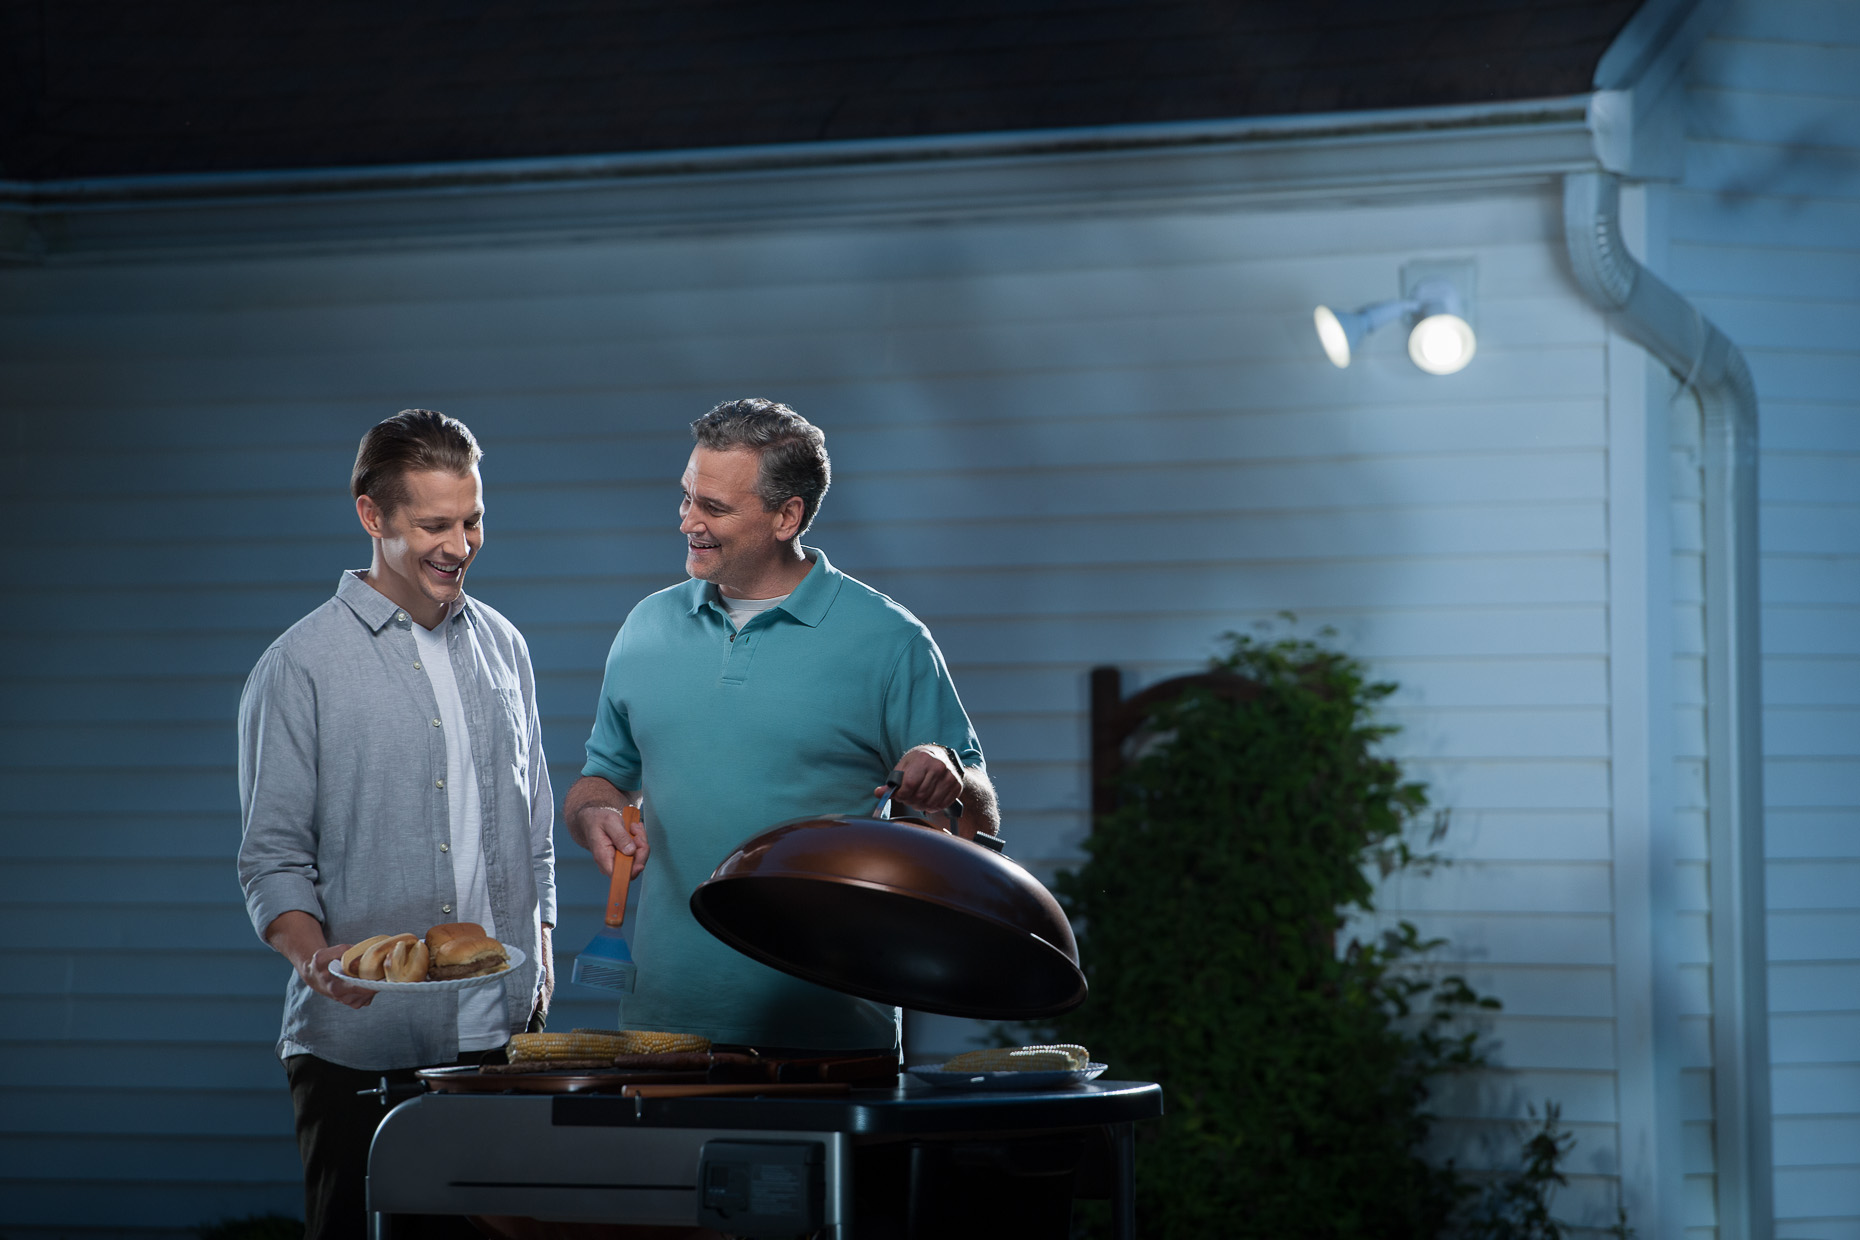 commercial-advertising-lifestyle-father-son-grill